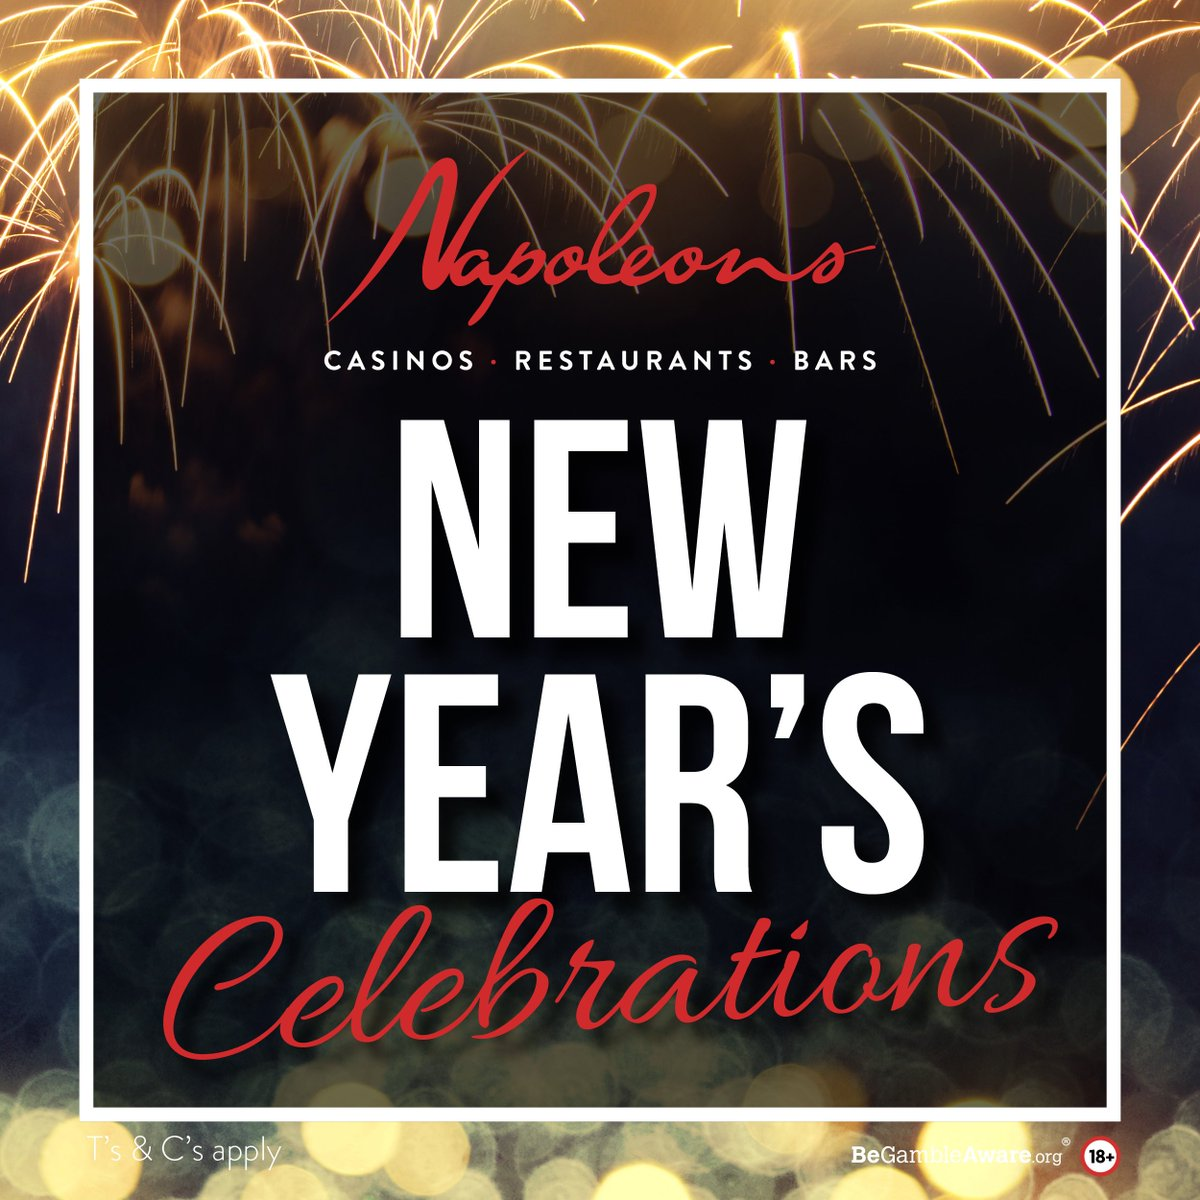 🎊 New Years Eve with a difference! 🎊 Its all about the glitz and glamour at Napoleons this year! Our branches will be hosting the party of the year and guess what, theyll even book your taxi home! #Hull #Leeds #Bradford #SheffieldIsSuper #Yorkshireis